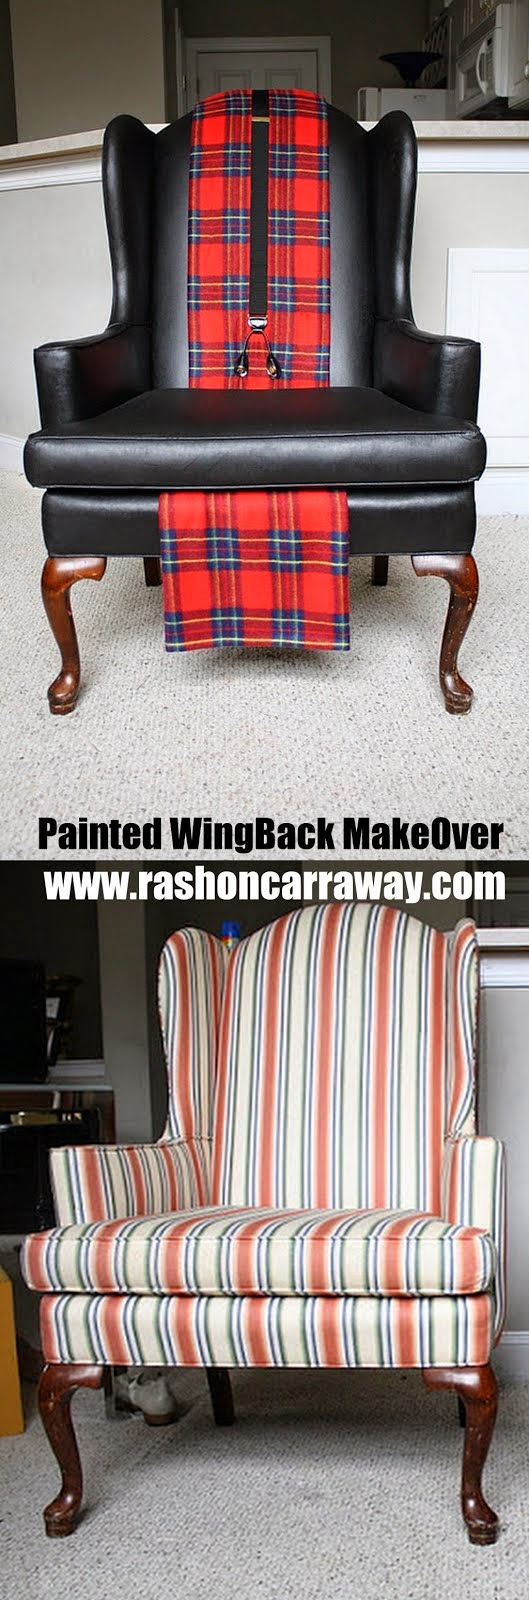 ---------DIY Painted Chair--------